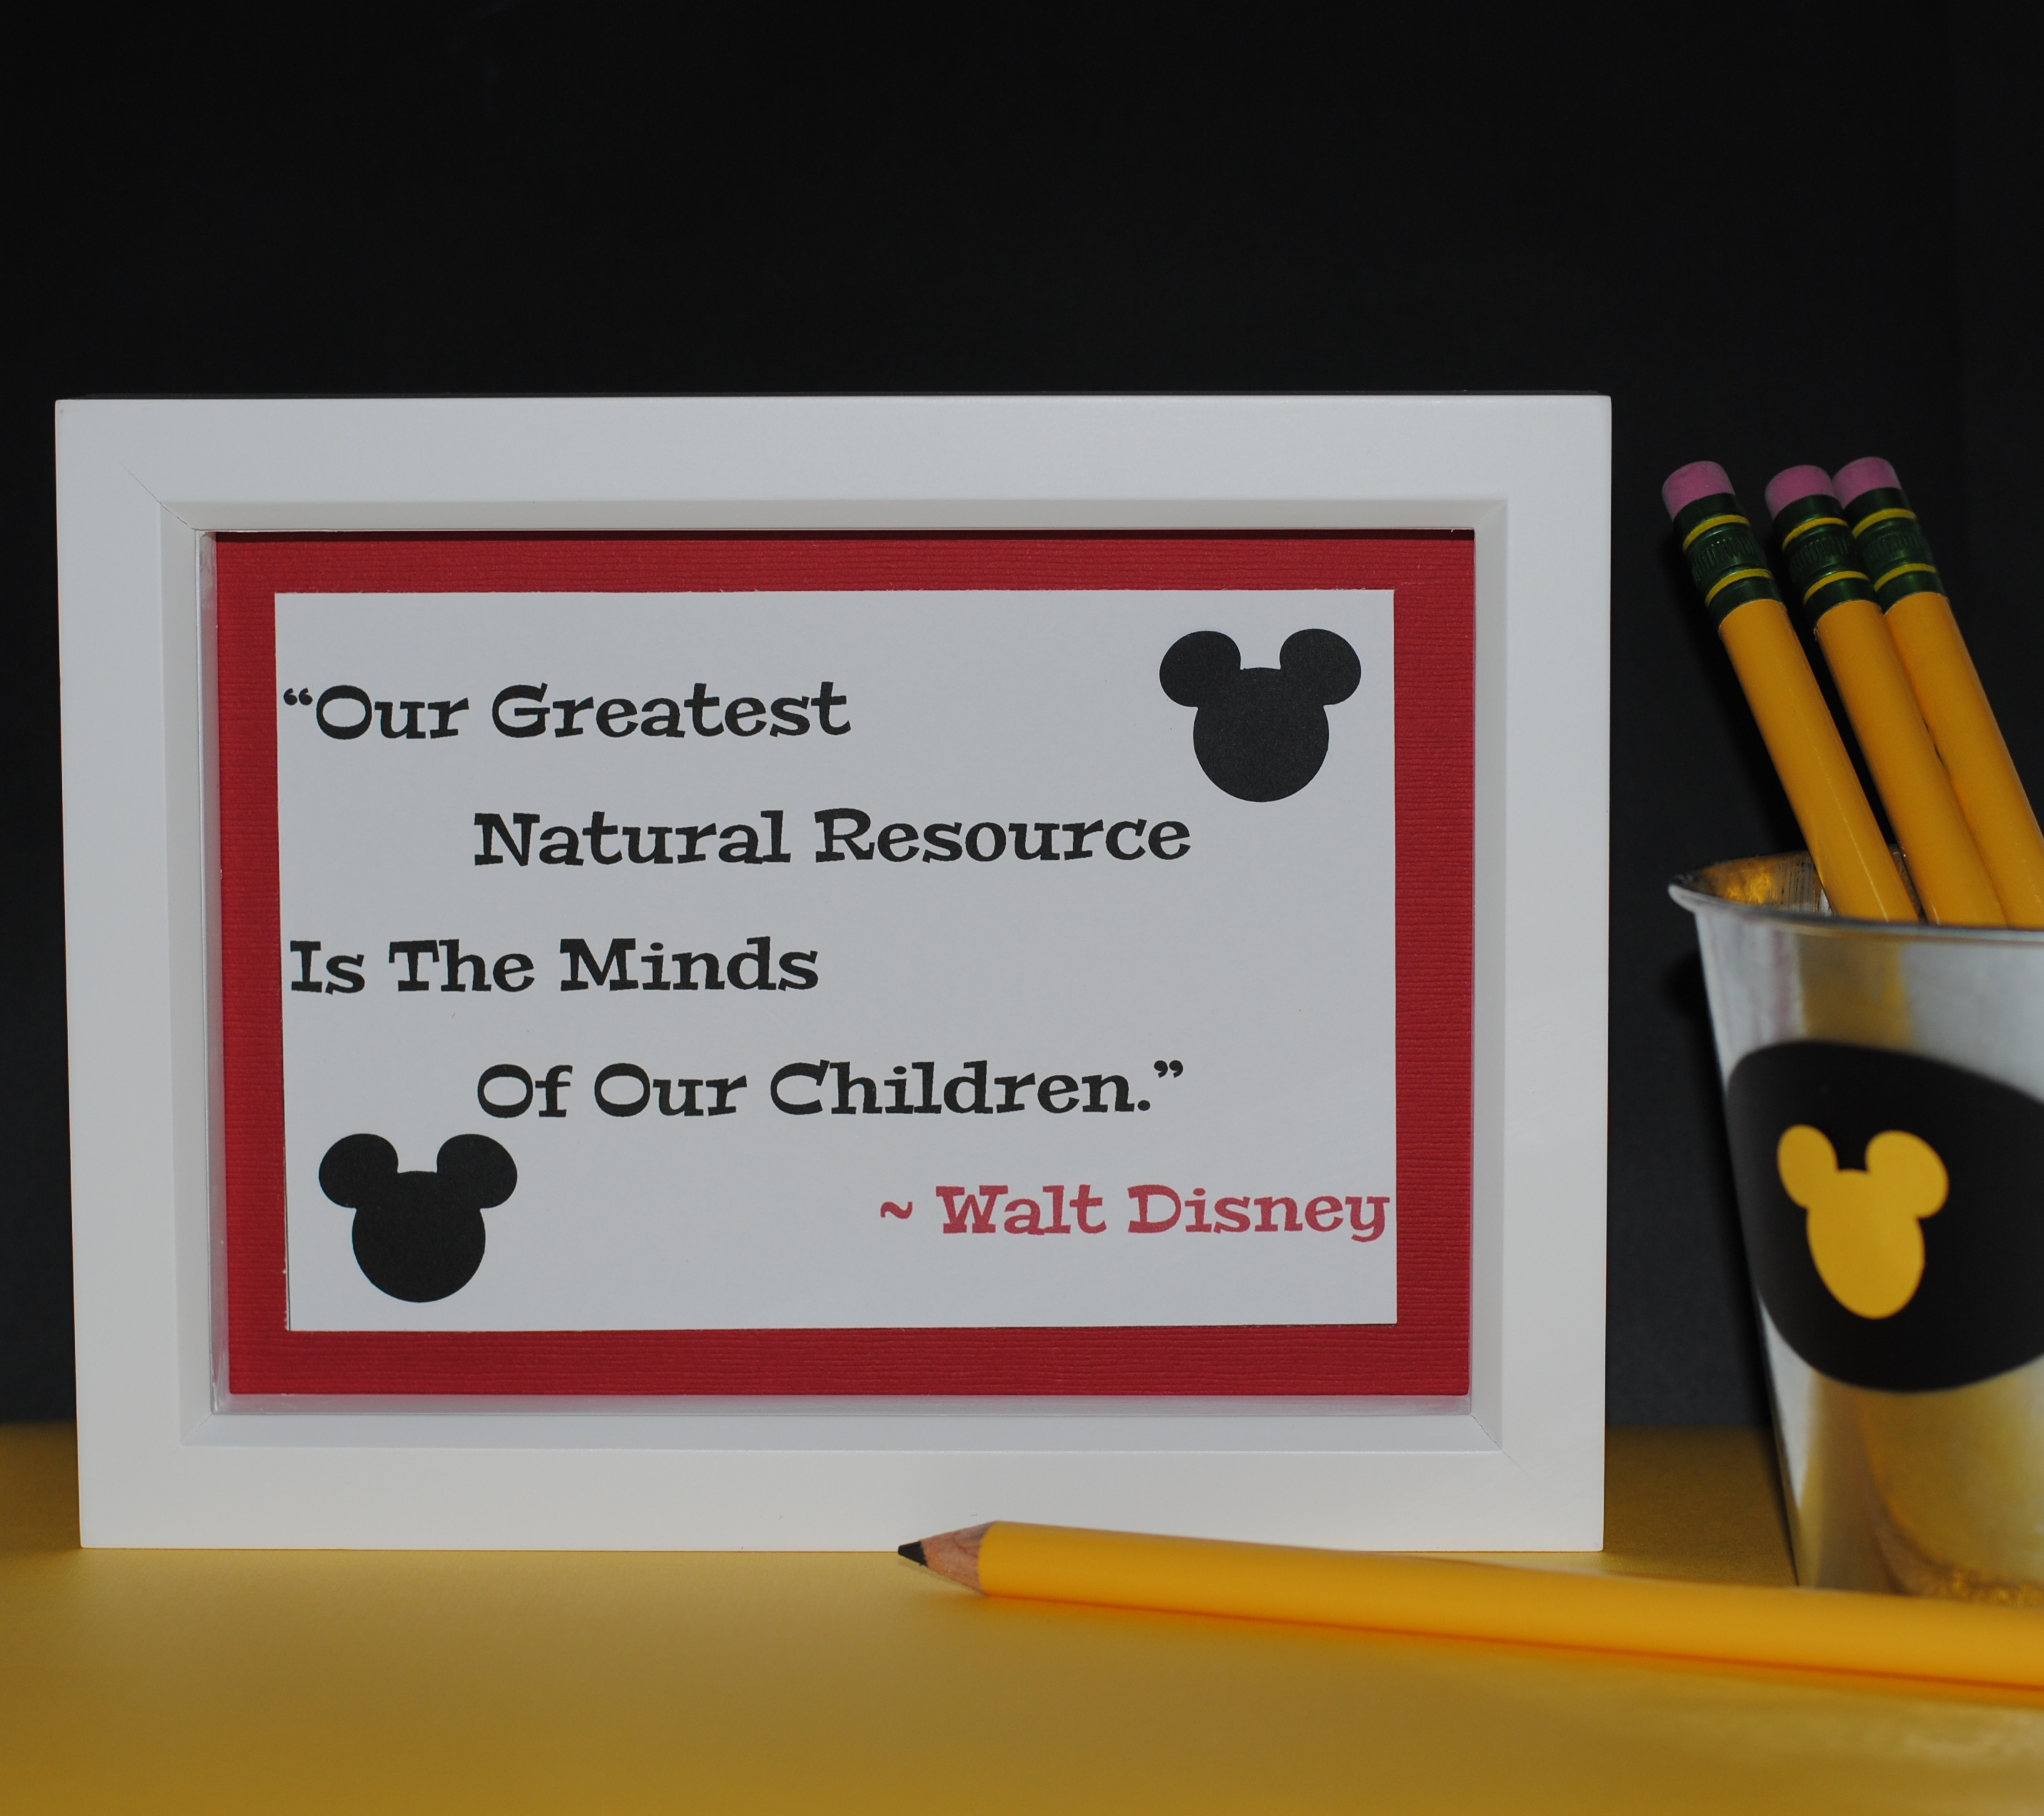 ... Mom's First Giveaway- Mickey Mouse Icon Craft Punch | Mouse Ears Mom: www.mouseearsmom.com/2013/08/17/mouse-ears-moms-first-giveaway...